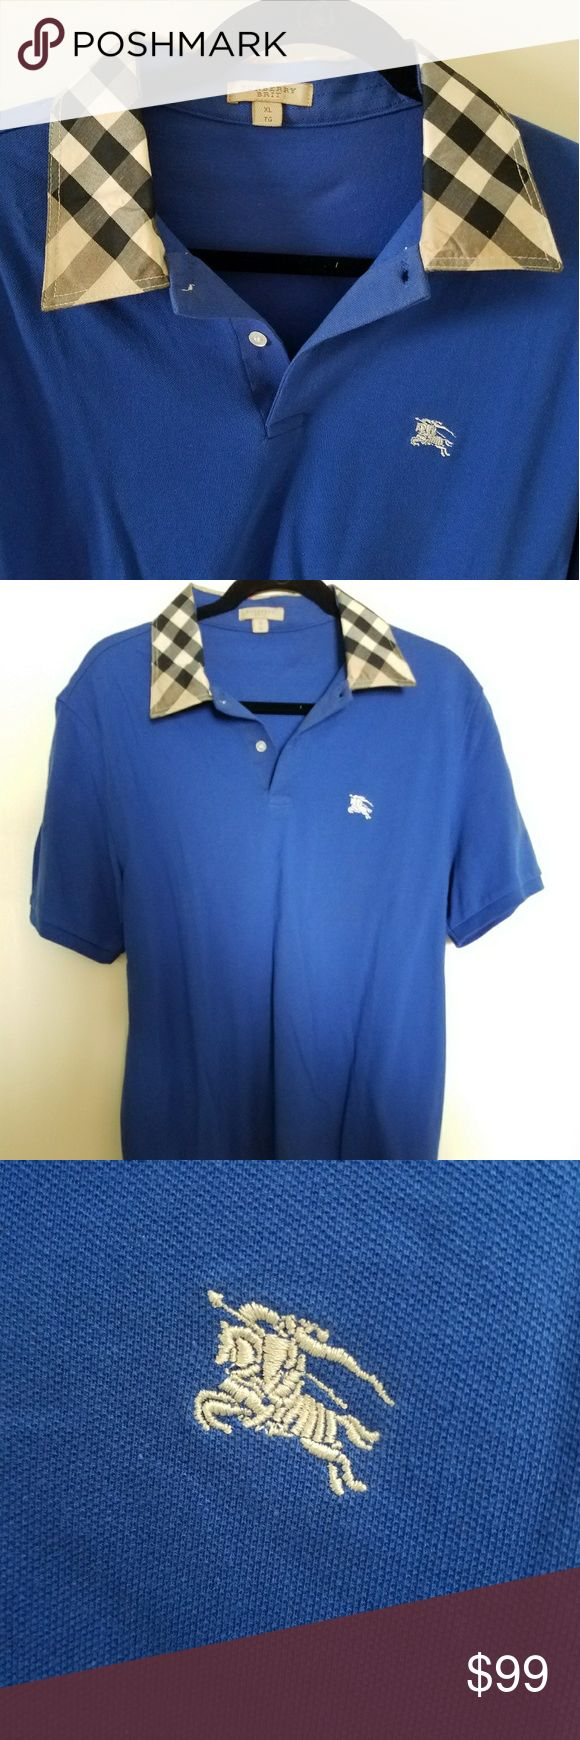 """Burberry Brit Polo Shirt Mens Large Blue NEW 100% Authentic Burberry Brit polo Shirt. Very Rare! This is a UK exclusive, not available in the USA!  XL on tag but that is UK Sizing, equals Large in US.  PRICE IS FIRM  BRAND NEW!!! No tag   23"""" Armpit to armpit. Please compare LAST PIC  Better Price through PPal Text me  Eric 925-984-1655  Low-ball offers will be ignored, sorry no trades  If you have an offer, make an offer, don't comment and ask if I'll take a certain amount.  Thanks Burberry…"""